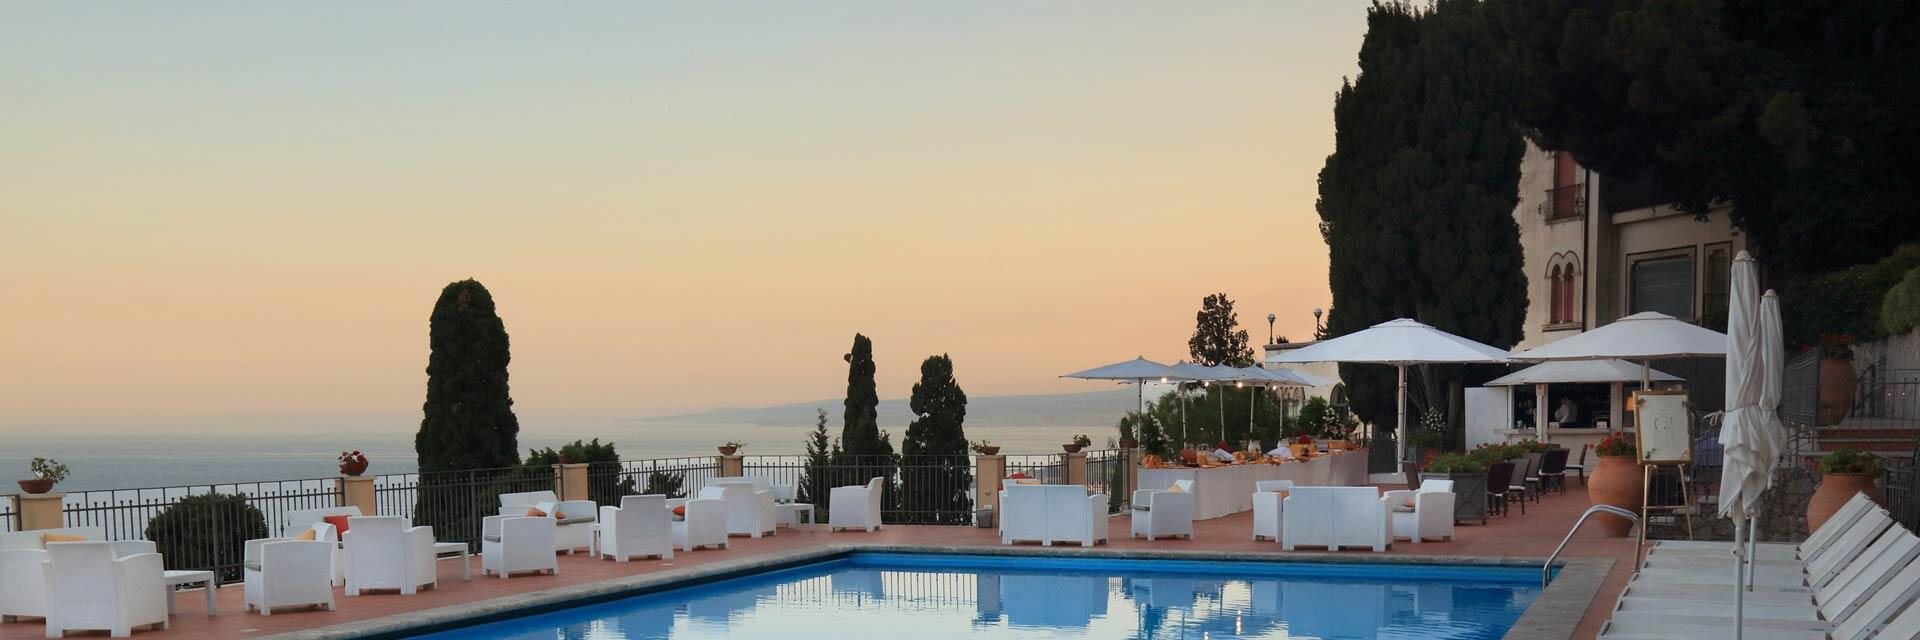 sanpietrotaormina en offer-in-september-at-5-star-hotel-with-sea-view-in-taormina 012